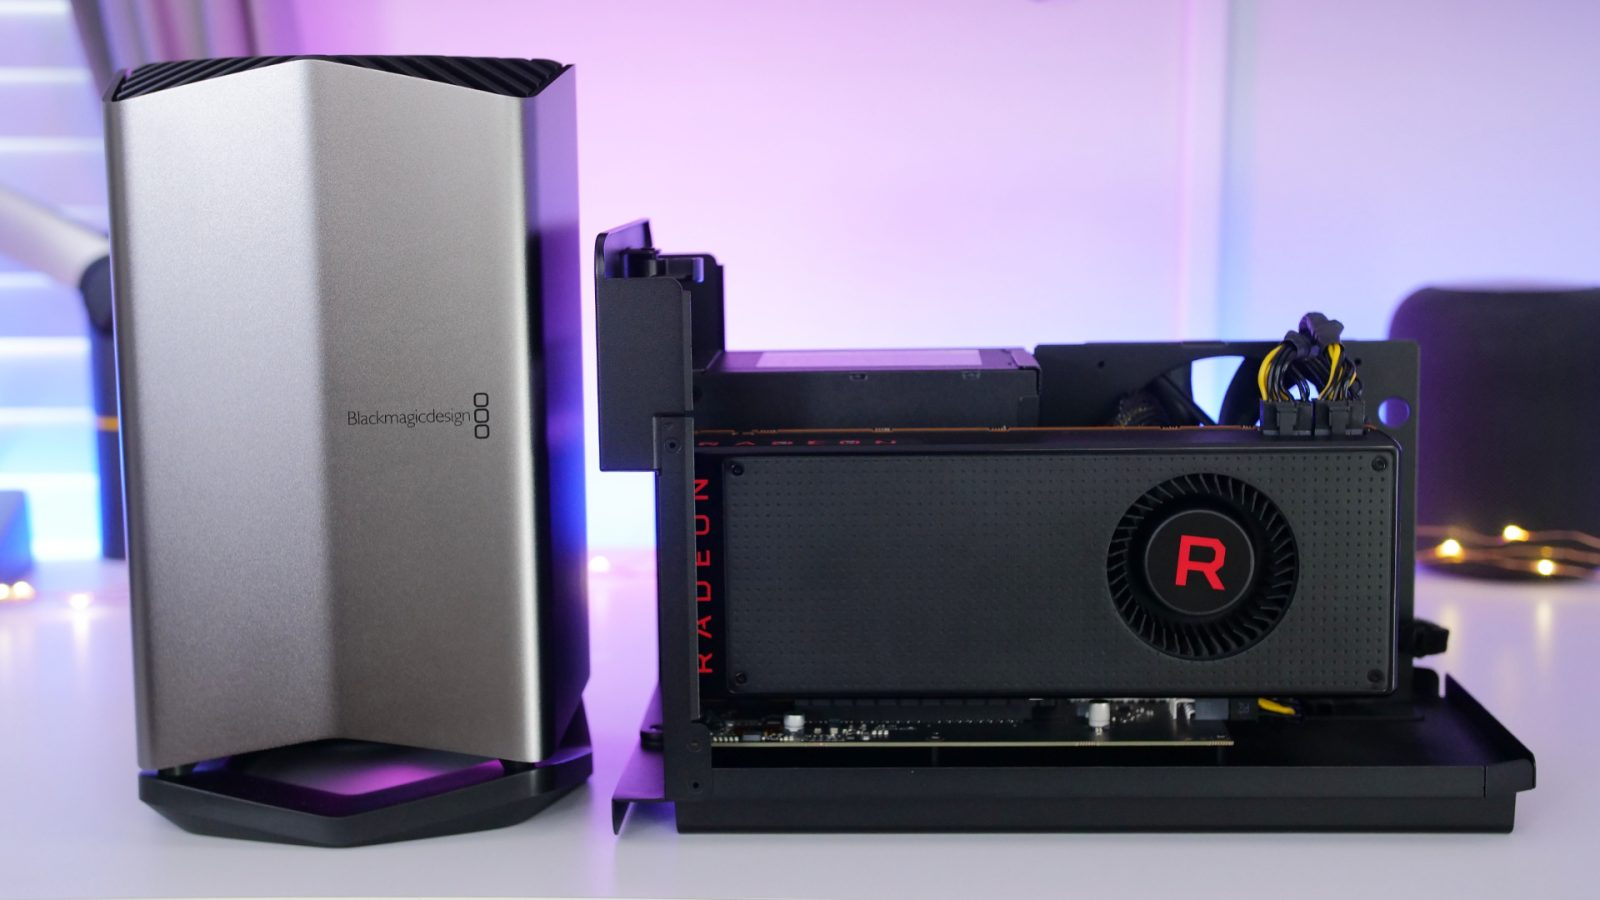 Compared: Razer Core X with RX Vega 64 vs Blackmagic eGPU [Video